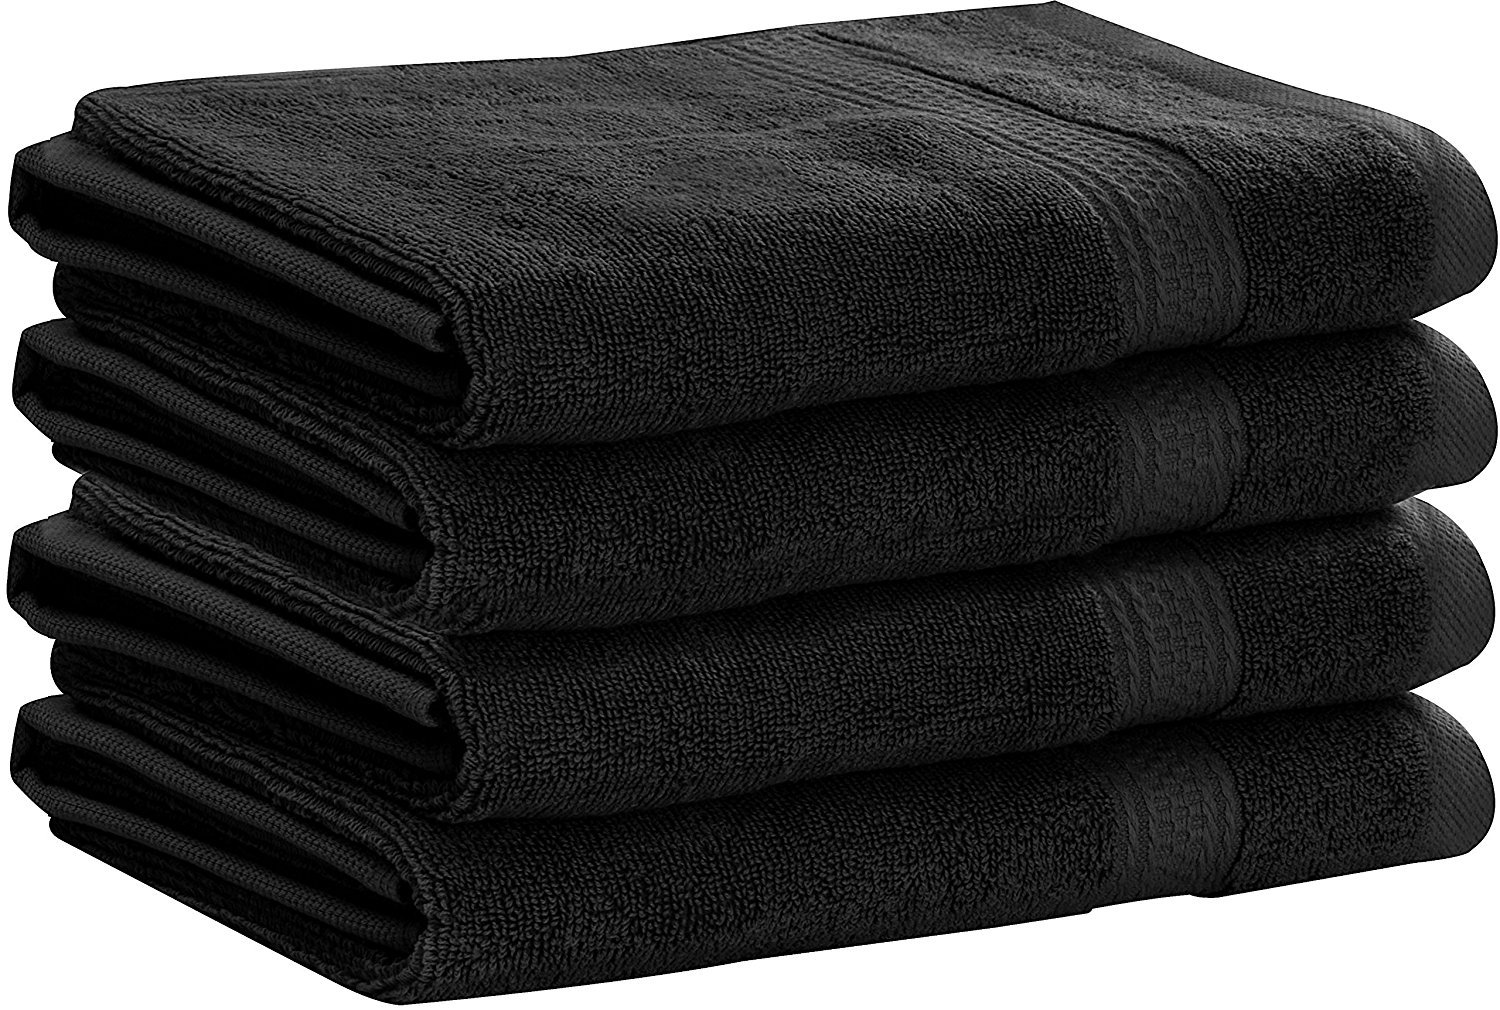 Utopia Towels Premium 700 GSM Cotton Large Hand Towels (Black, 4-Pack,16 x 28 inches) - Multipurpose Towels for Bath, Hand, Face, Gym and Spa UT0466